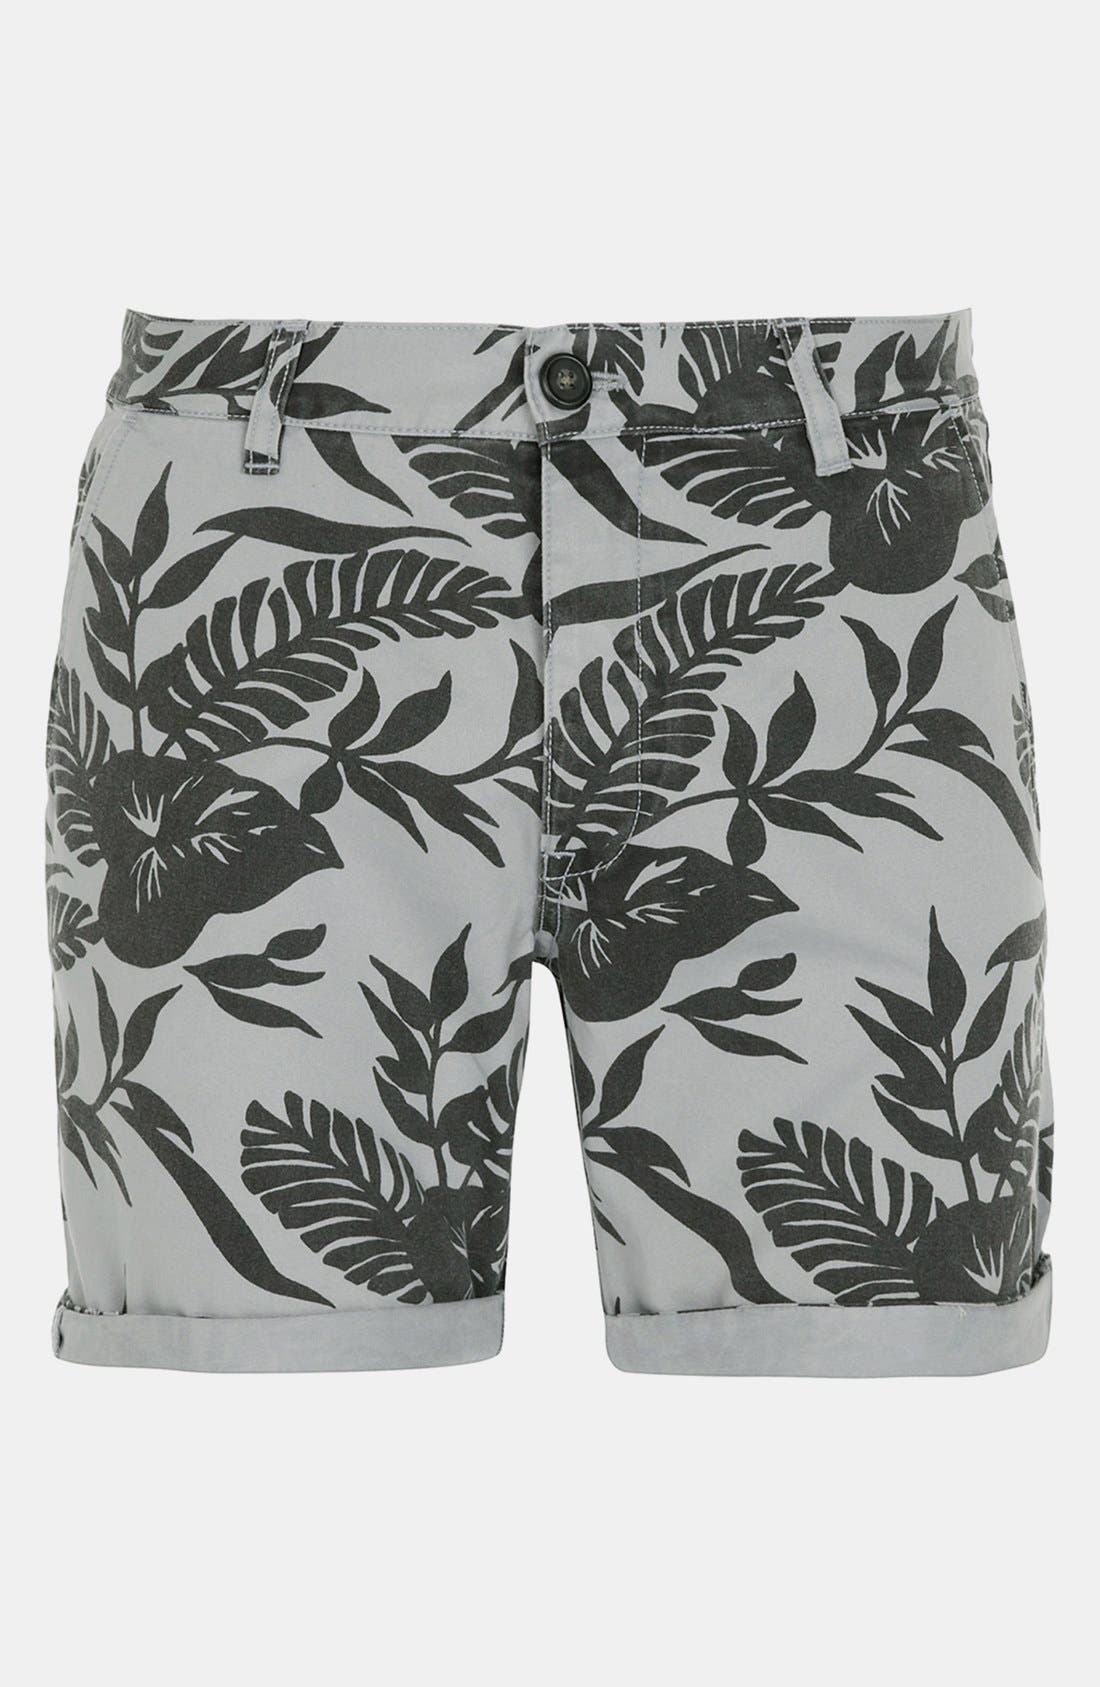 Alternate Image 1 Selected - Topman 'Okavango' Print Shorts